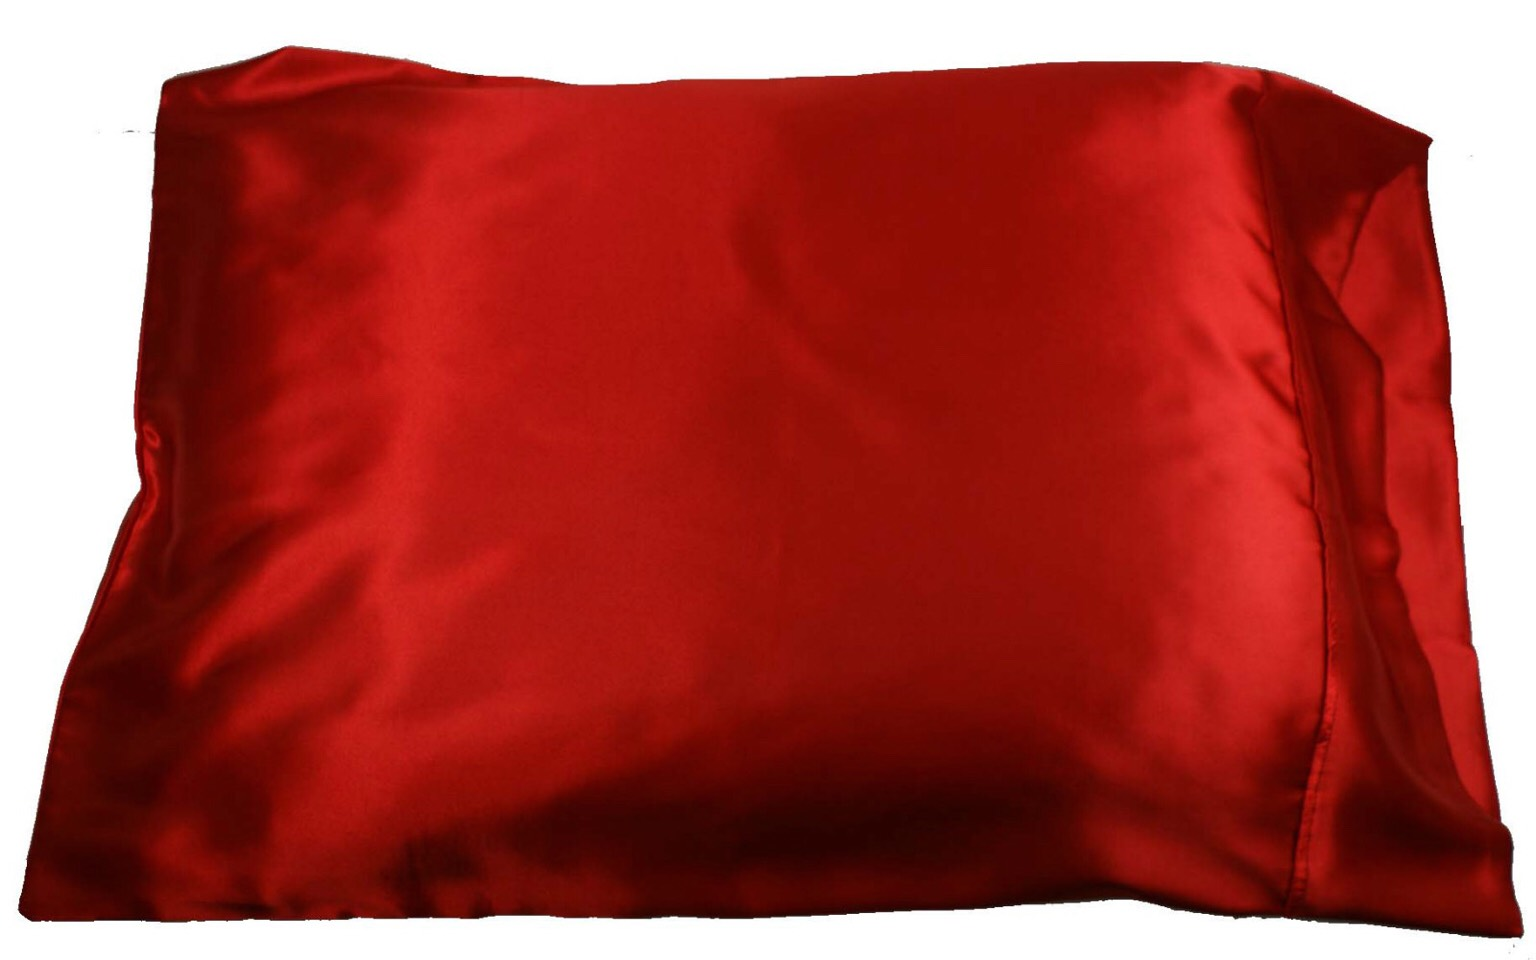 Bonus Top Tip:  Sleep on a satin pillow cover. Other types of pillow covers will pull out your hair when you toss and turn throughout the night, this will help to prevent a lot of hair loss. A satin pillow cover is definitely worth investing in!